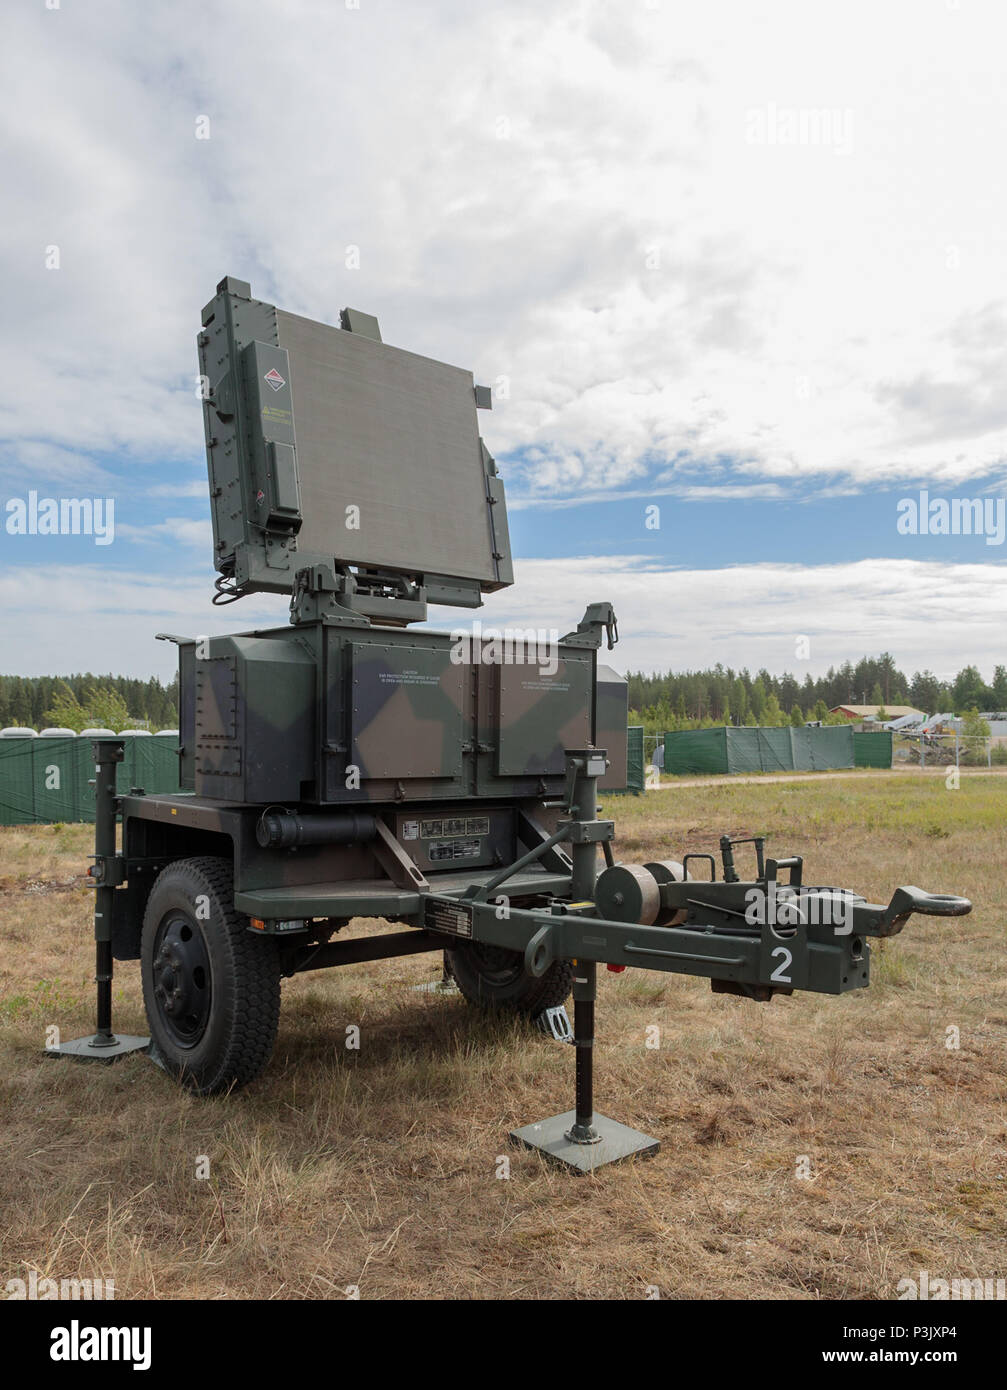 AN/MPQ-64F1 Sentinel 3D radar integrated with the NASAMS 2 surface-to-air missile system of the Finnish Army. - Stock Image